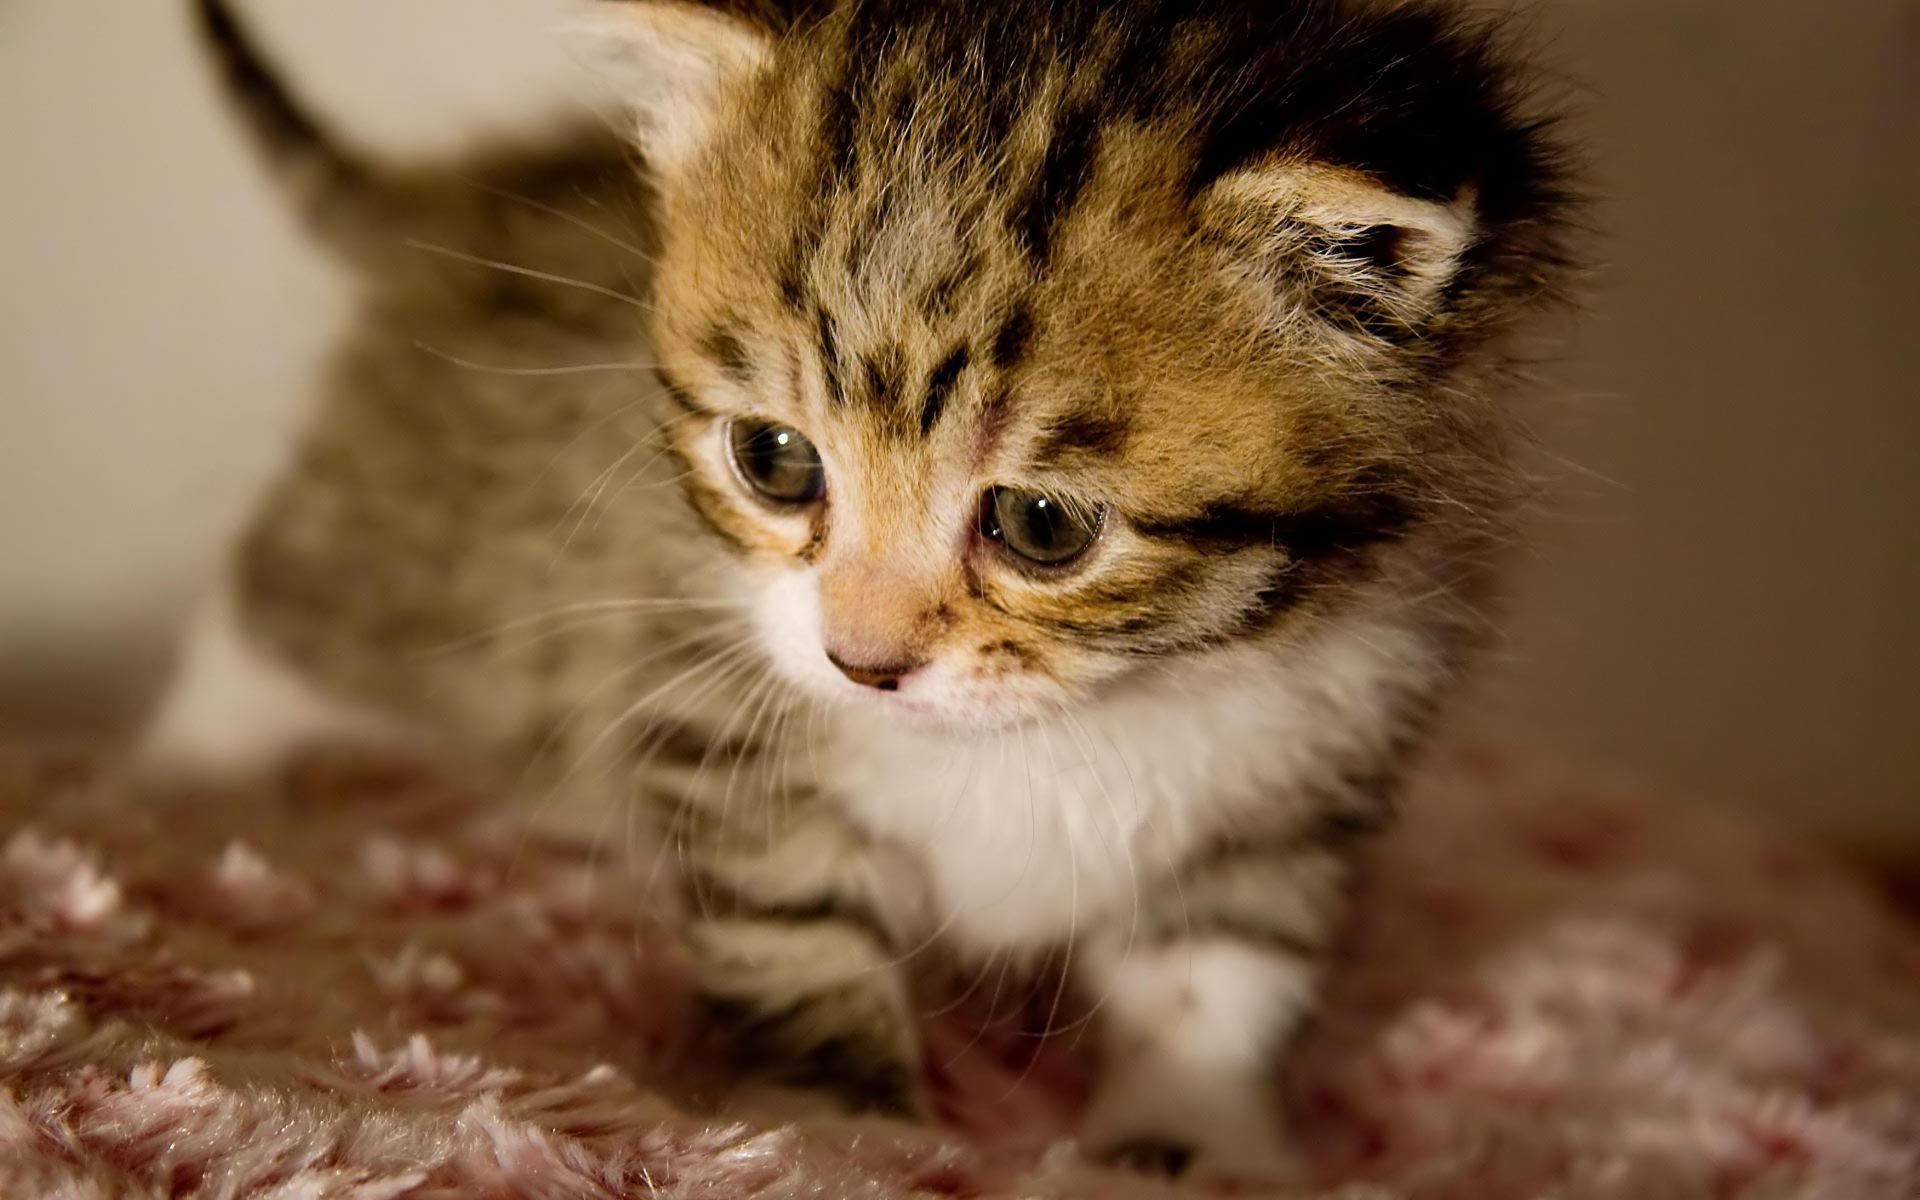 Baby Kitty Cat Wallpaper Image Gallery